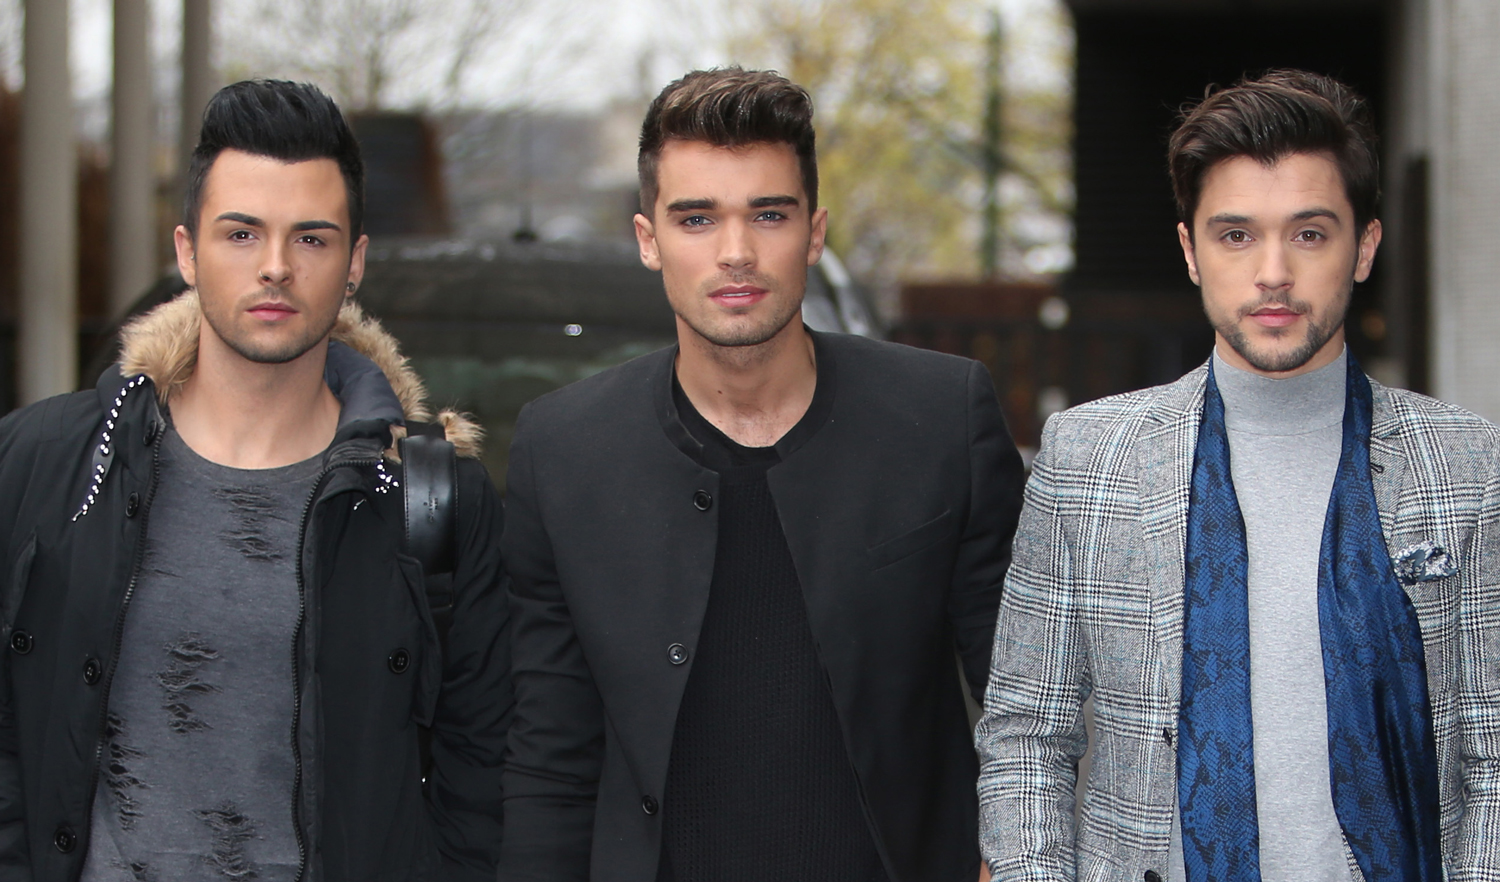 Union J Shows Off Hot Shirtless Bodies on Barbados Beach